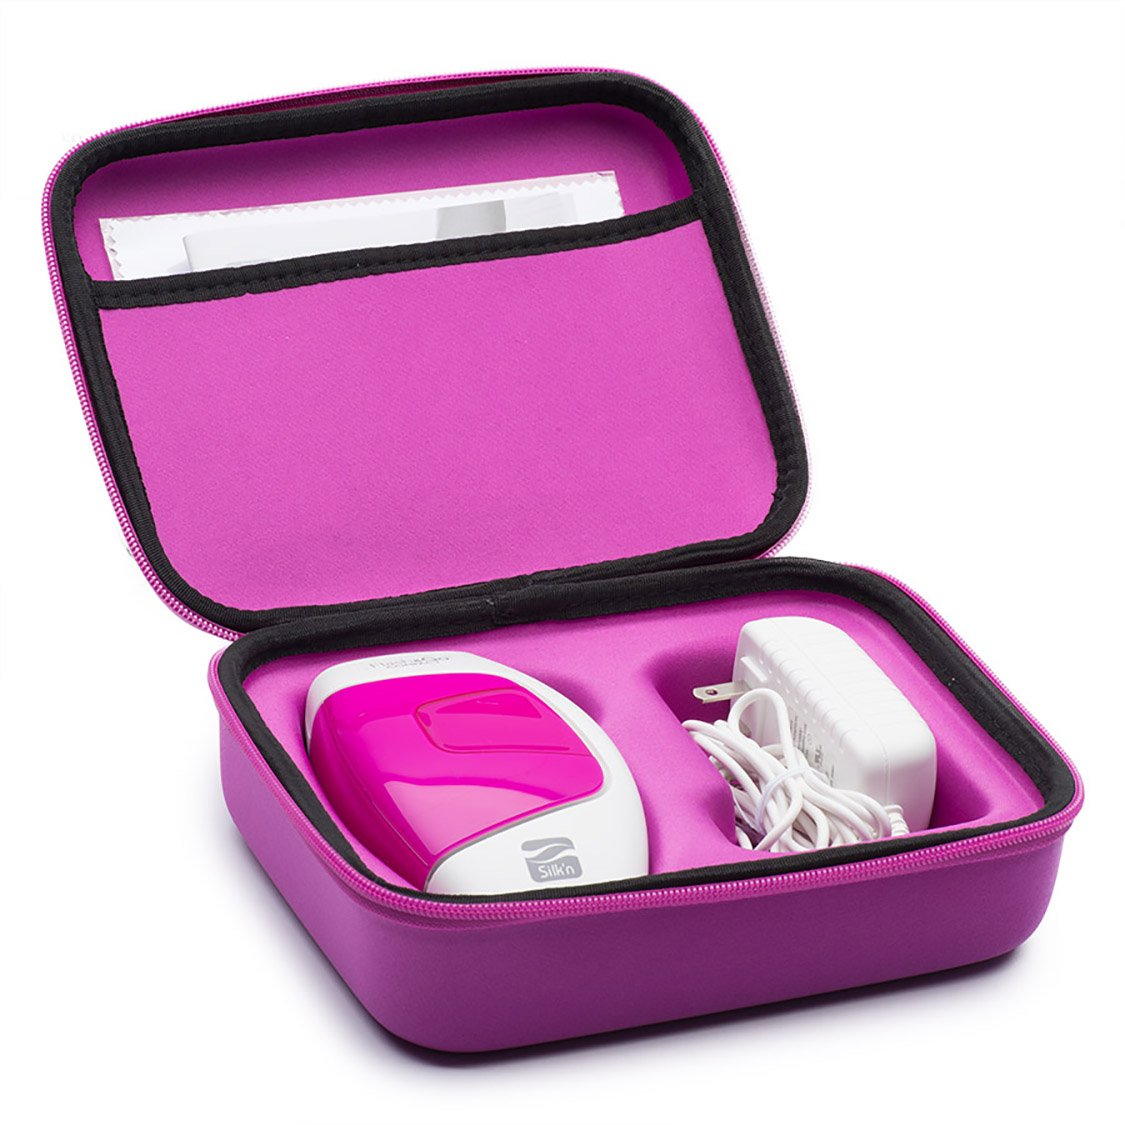 Silk'n Flash&Go Compact Laser Hair Removal Device and Trimmer by Silk'n (Image #4)